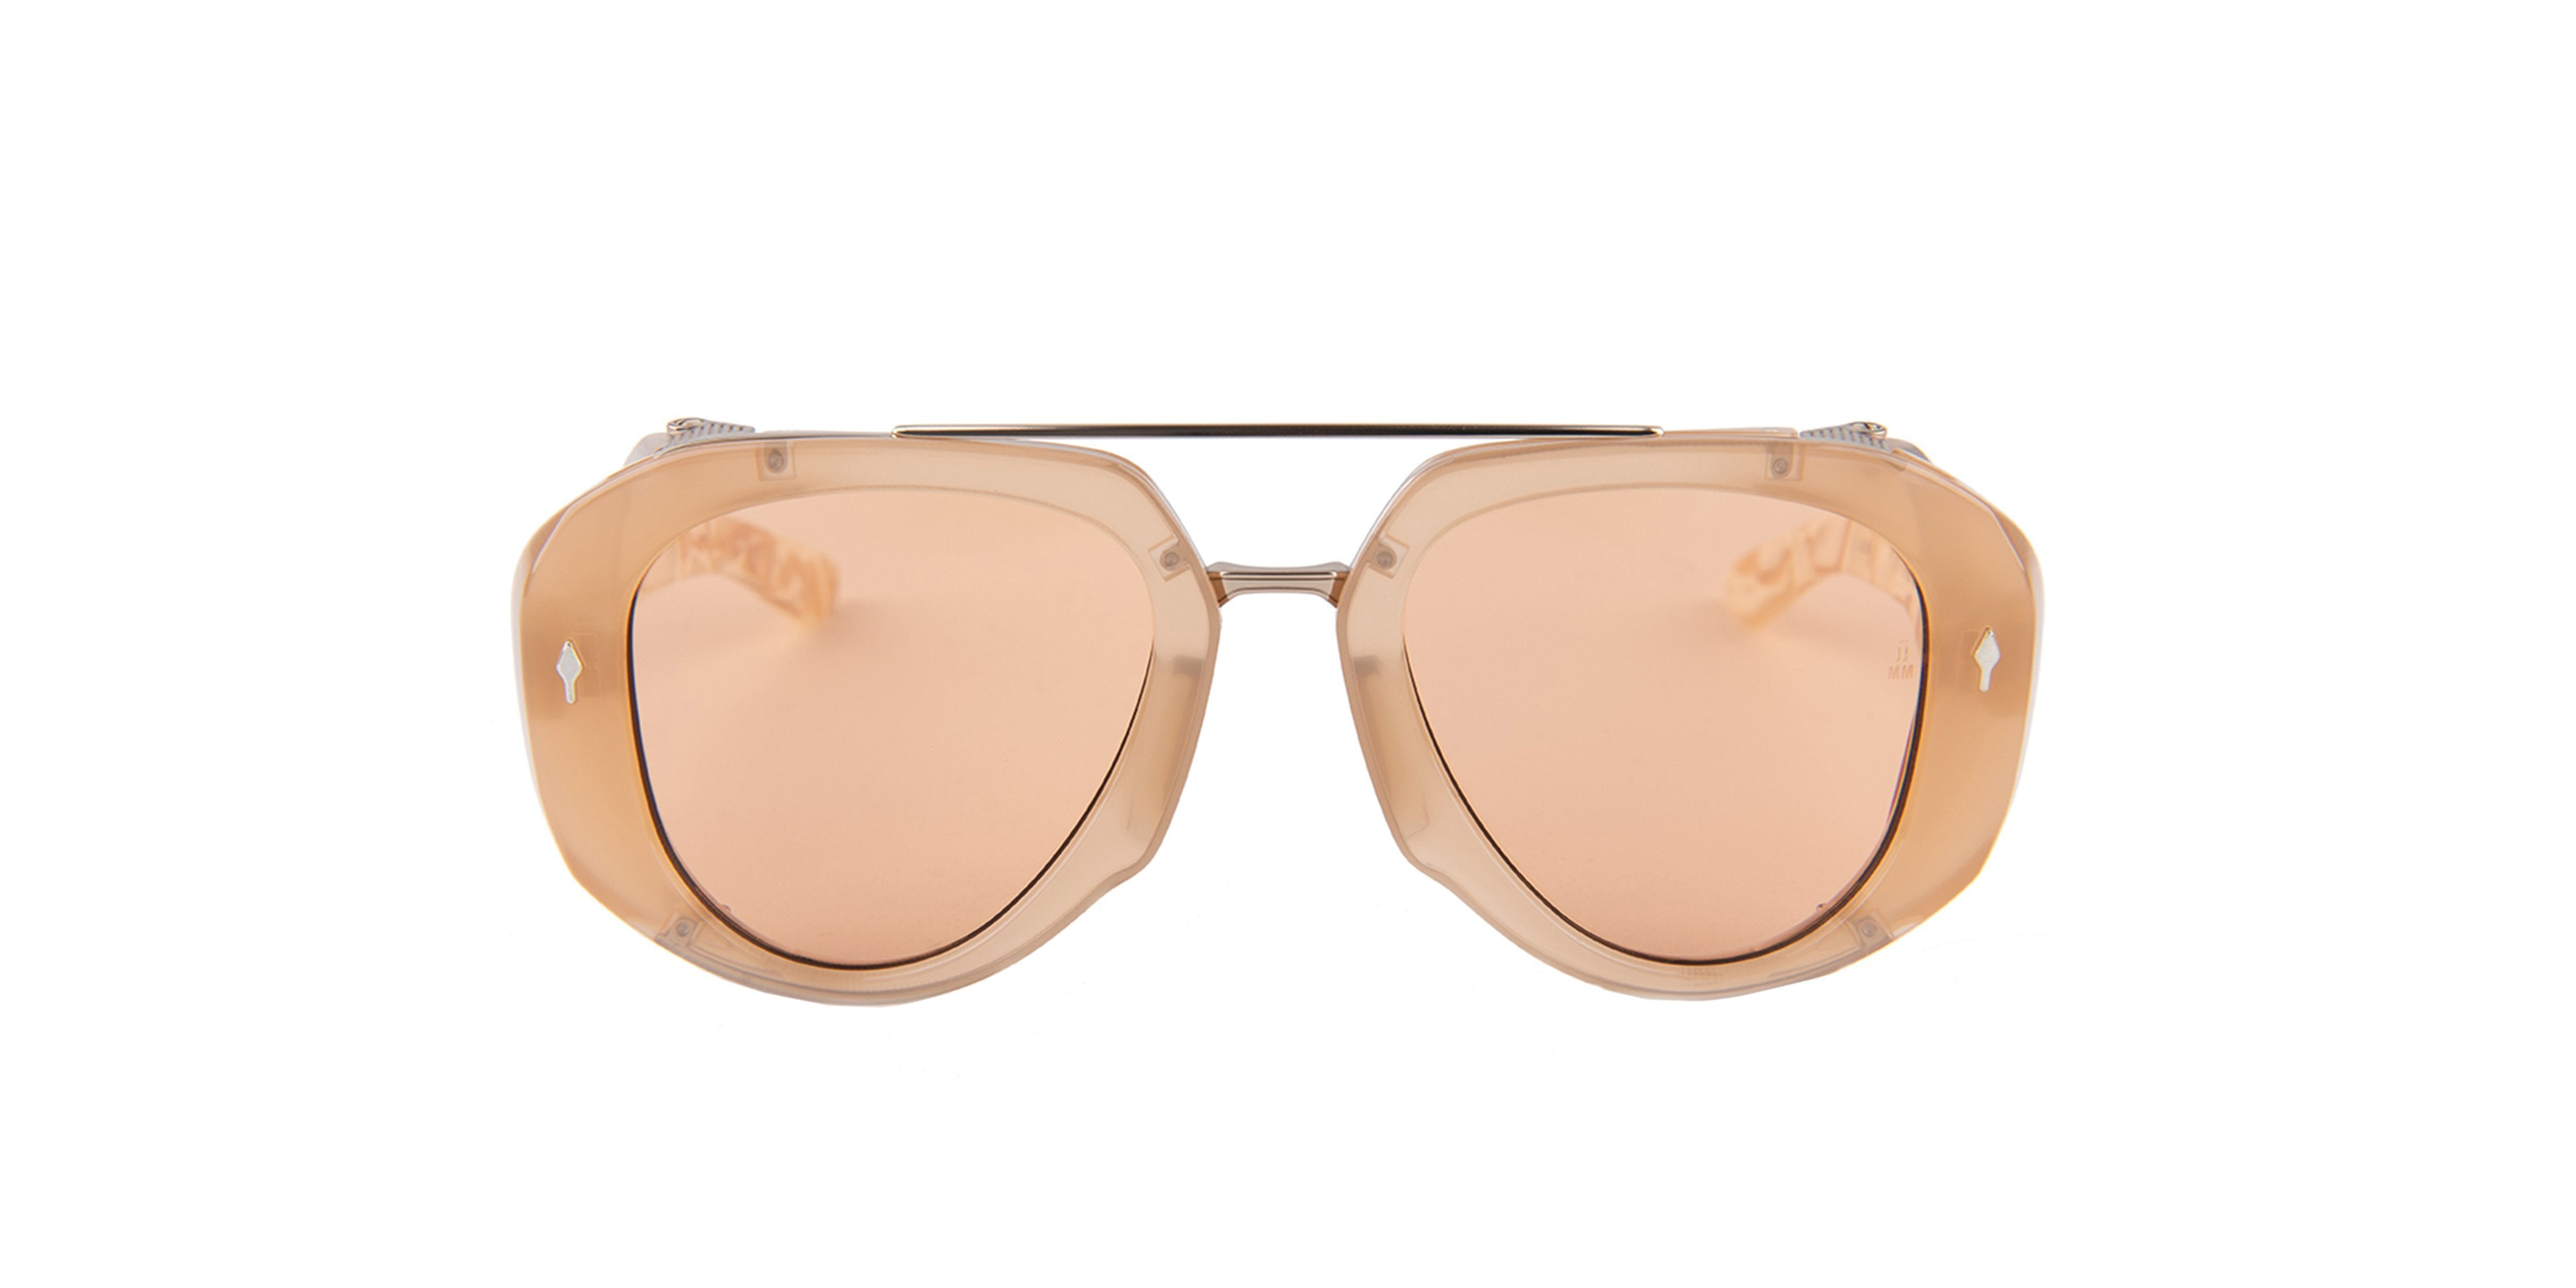 Jacques Marie Mage - LouLou Beige/Rose Gold Aviator Unisex Sunglasses - 50mm-Sunglasses-Designer Eyes